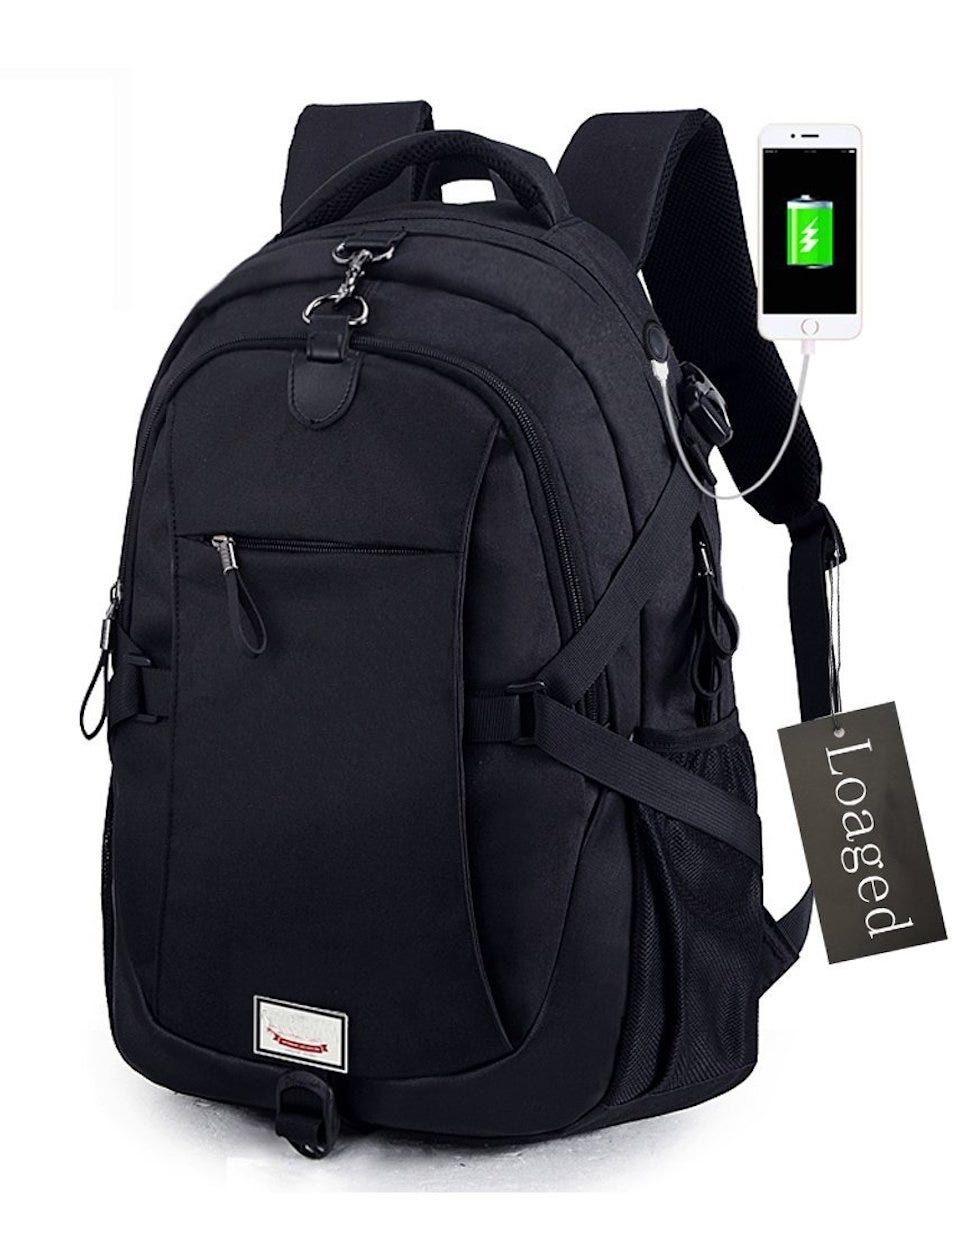 2a3b155a43 The Best Anti-Theft Backpacks For Keeping Your Tech Safe – Review Geek